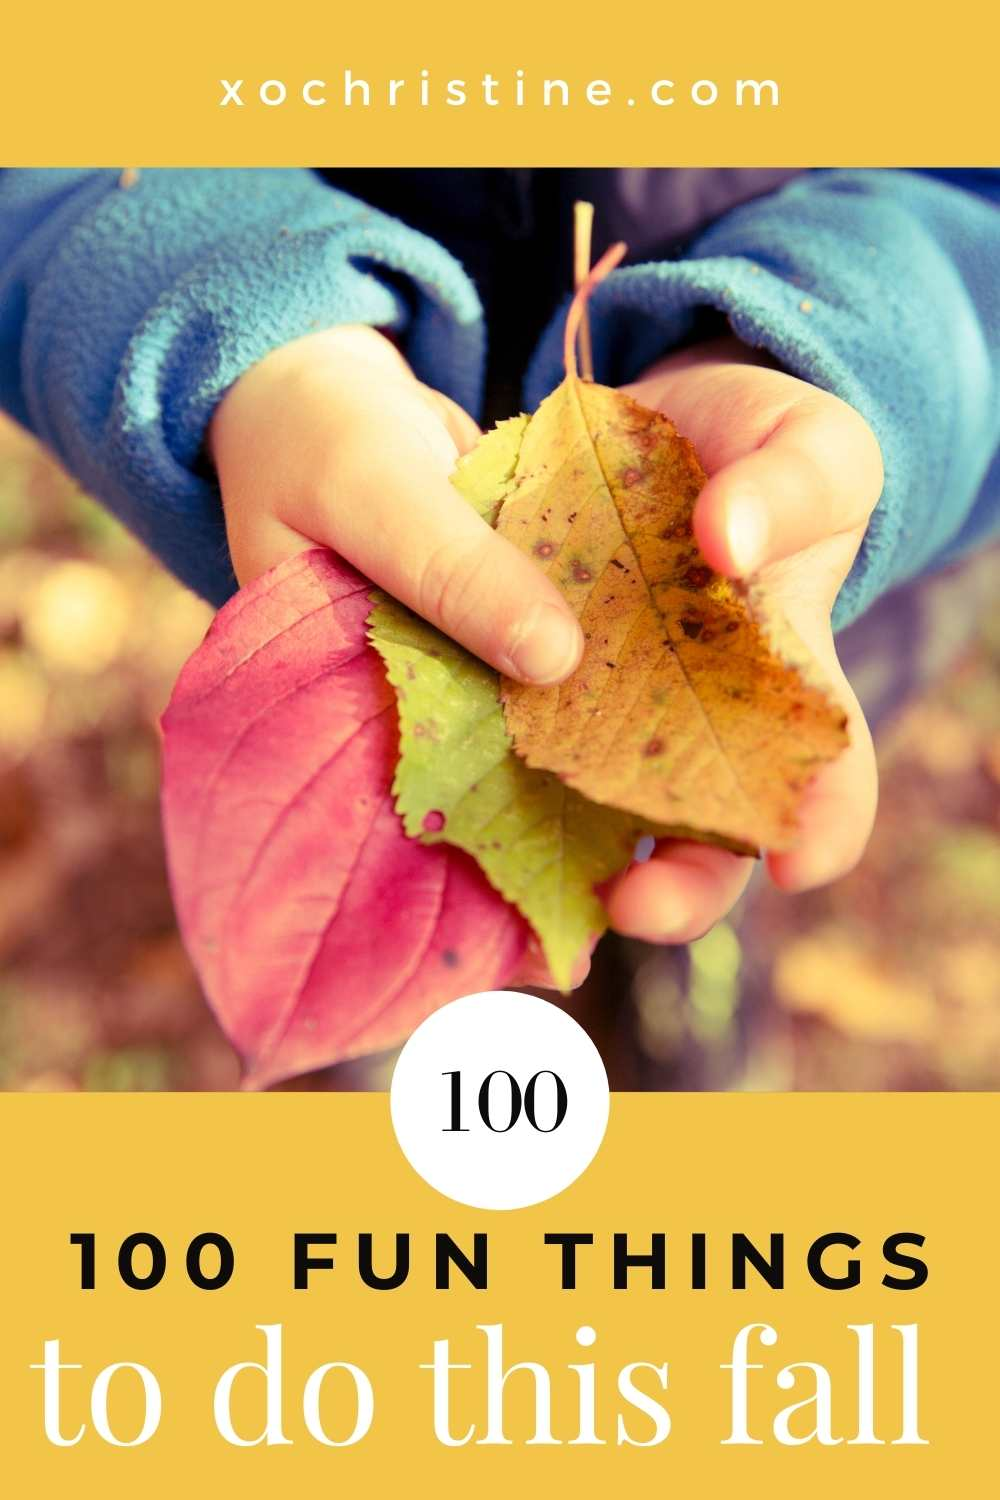 100 fun things to do this fall (2021)